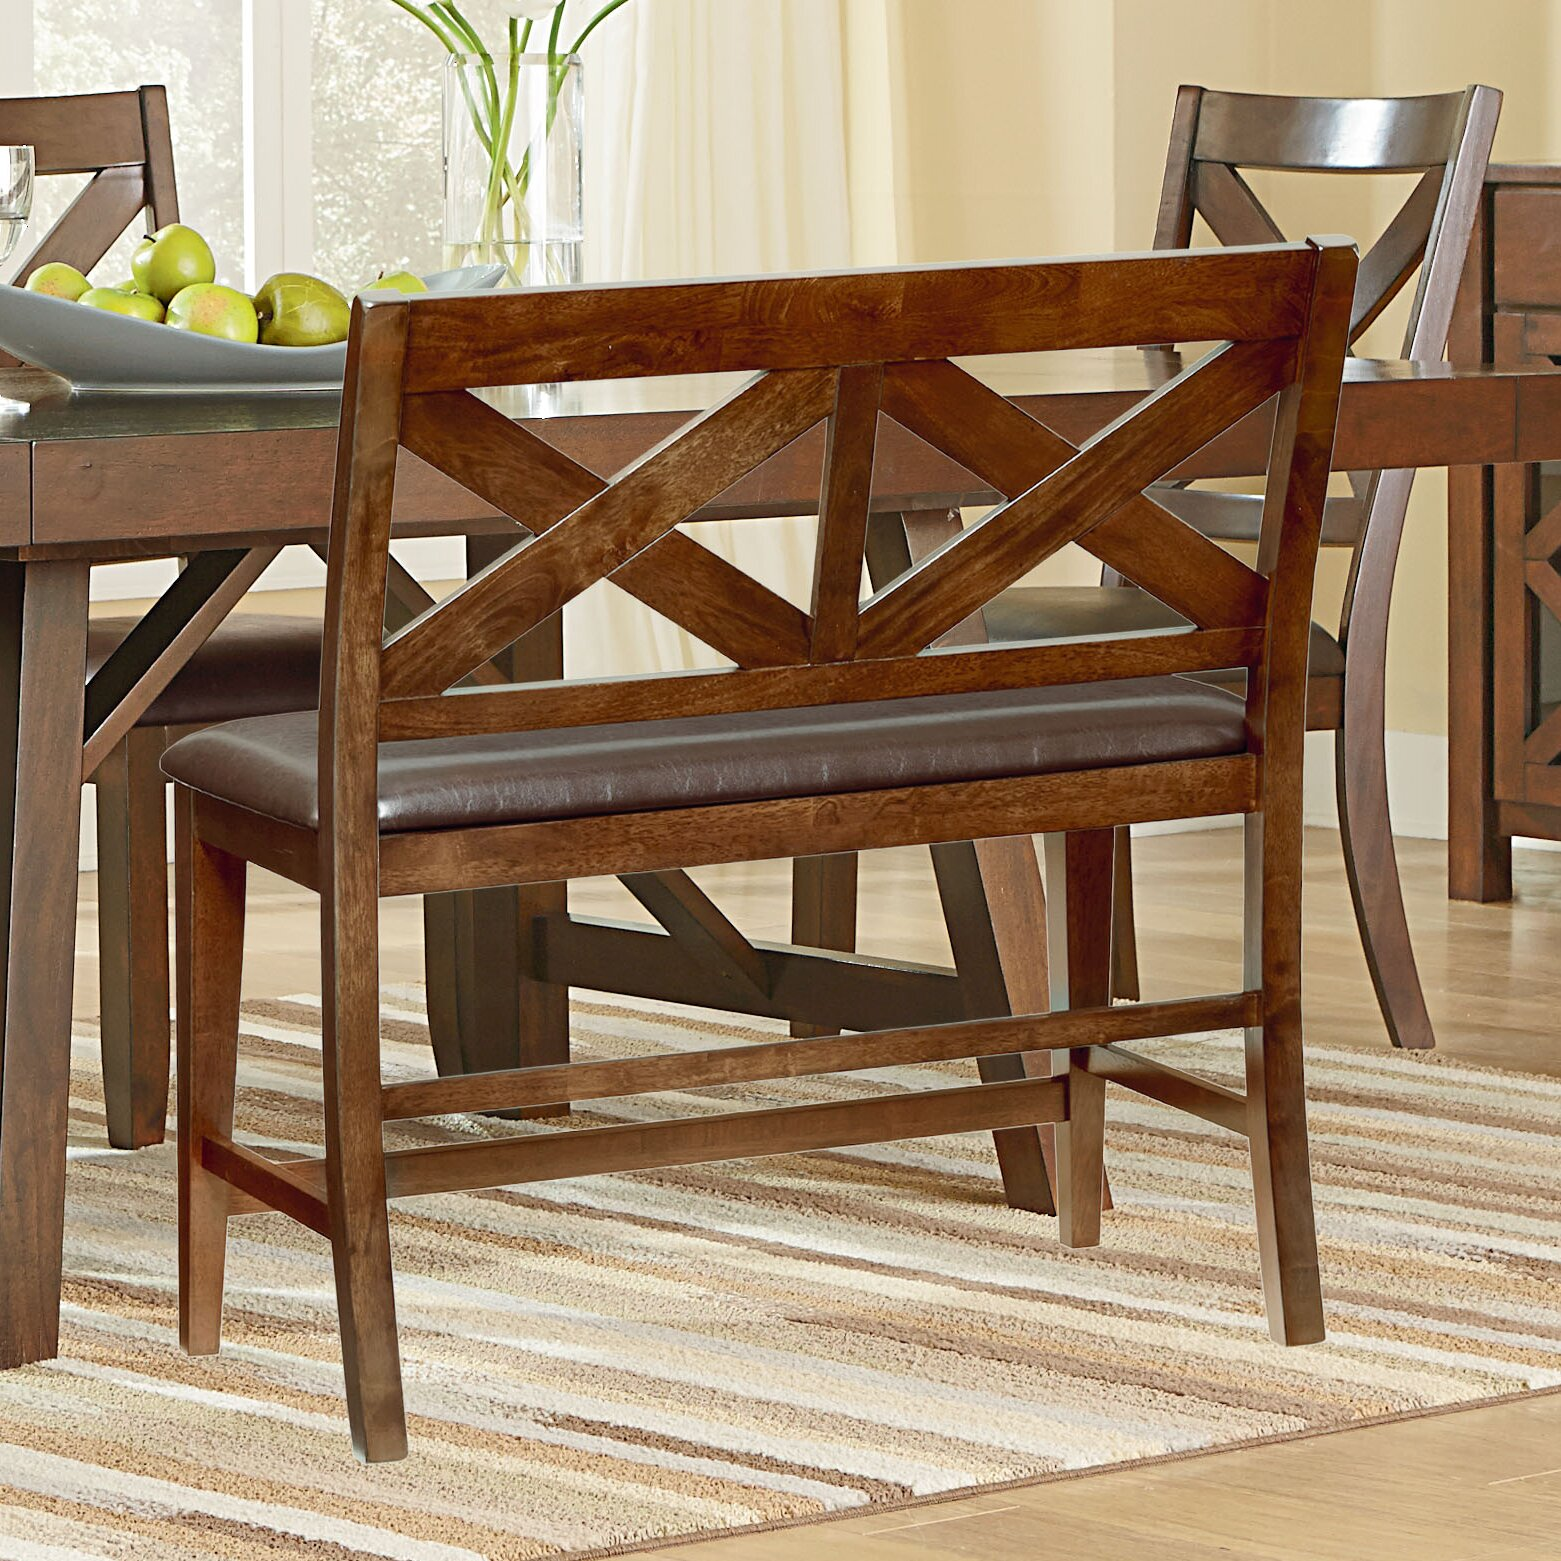 Standard Furniture Omaha Wood Kitchen Bench & Reviews